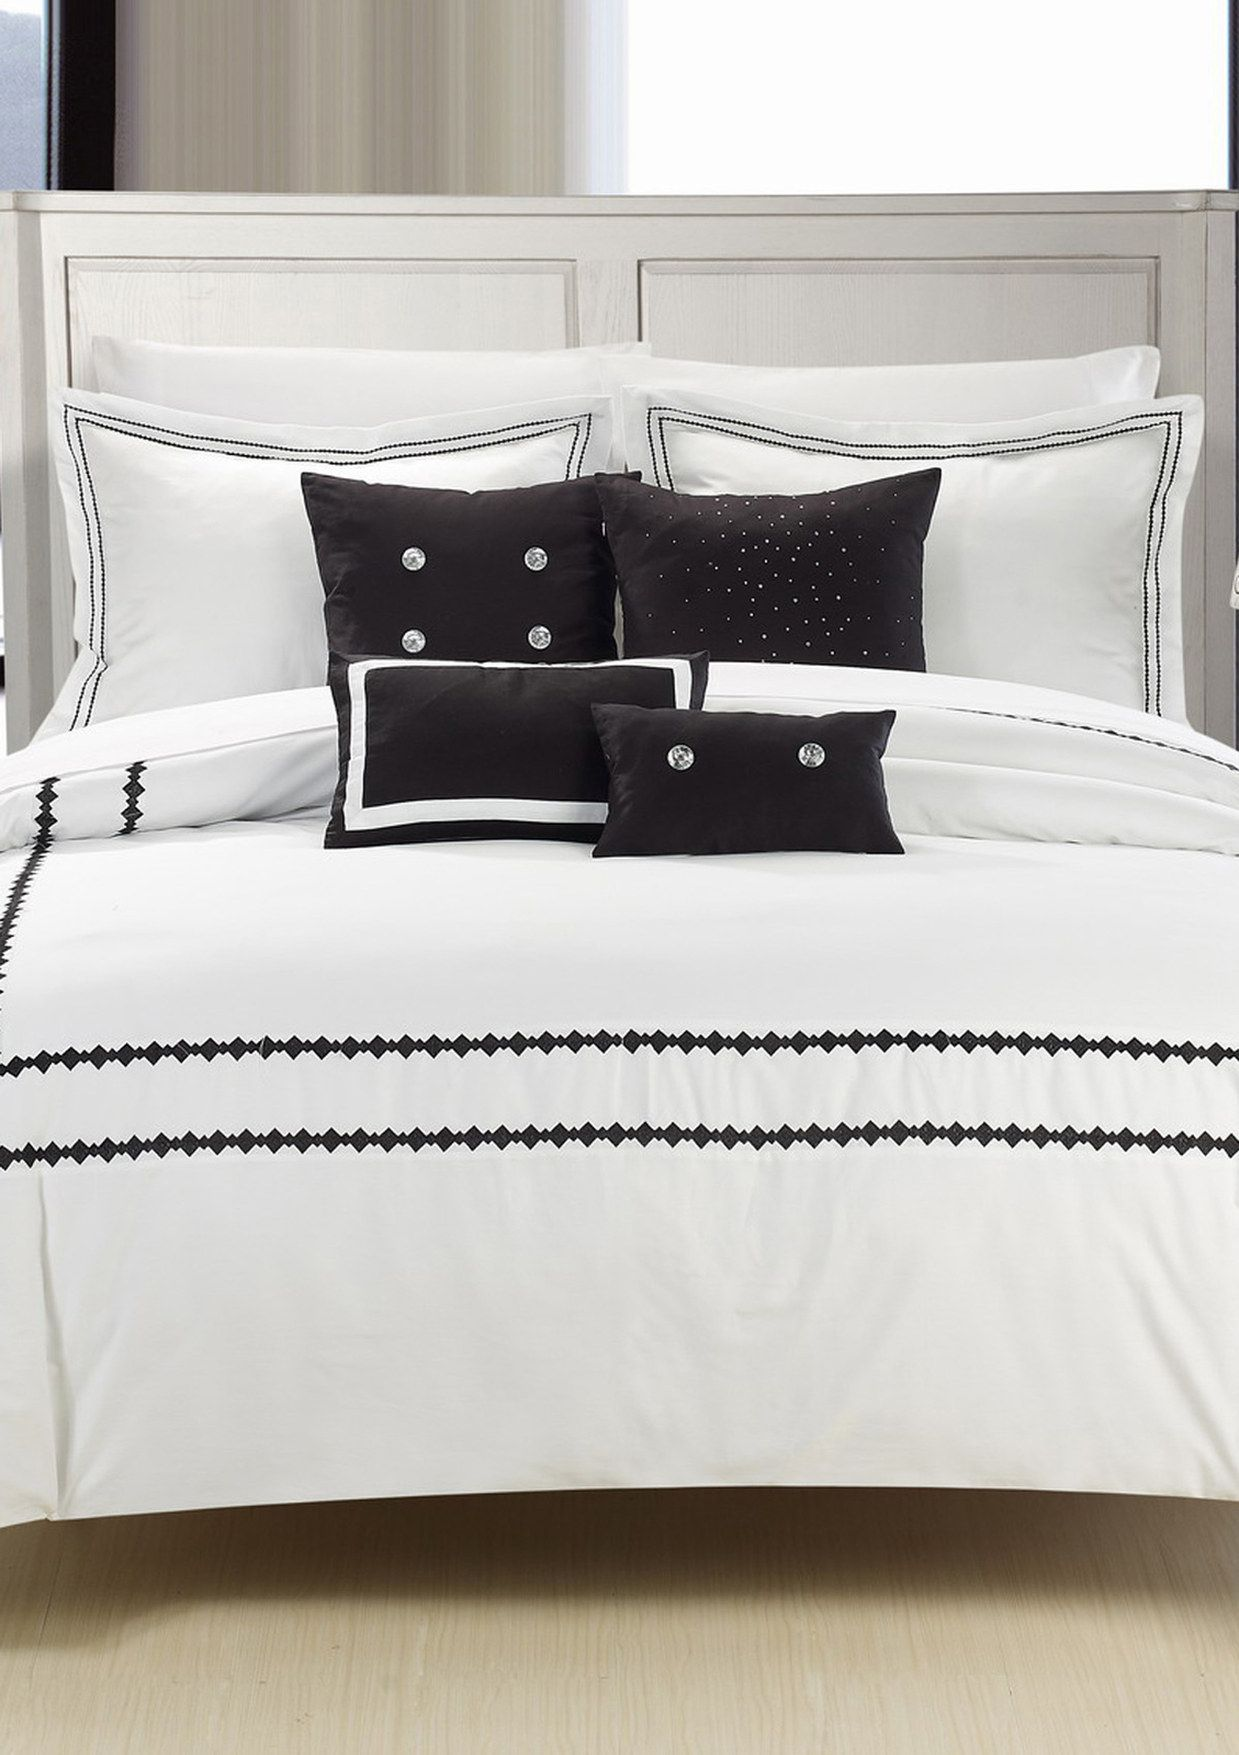 CHIC HOME 7-Piece Mandalay Comforter Set | Dream Decor | Pinterest ...